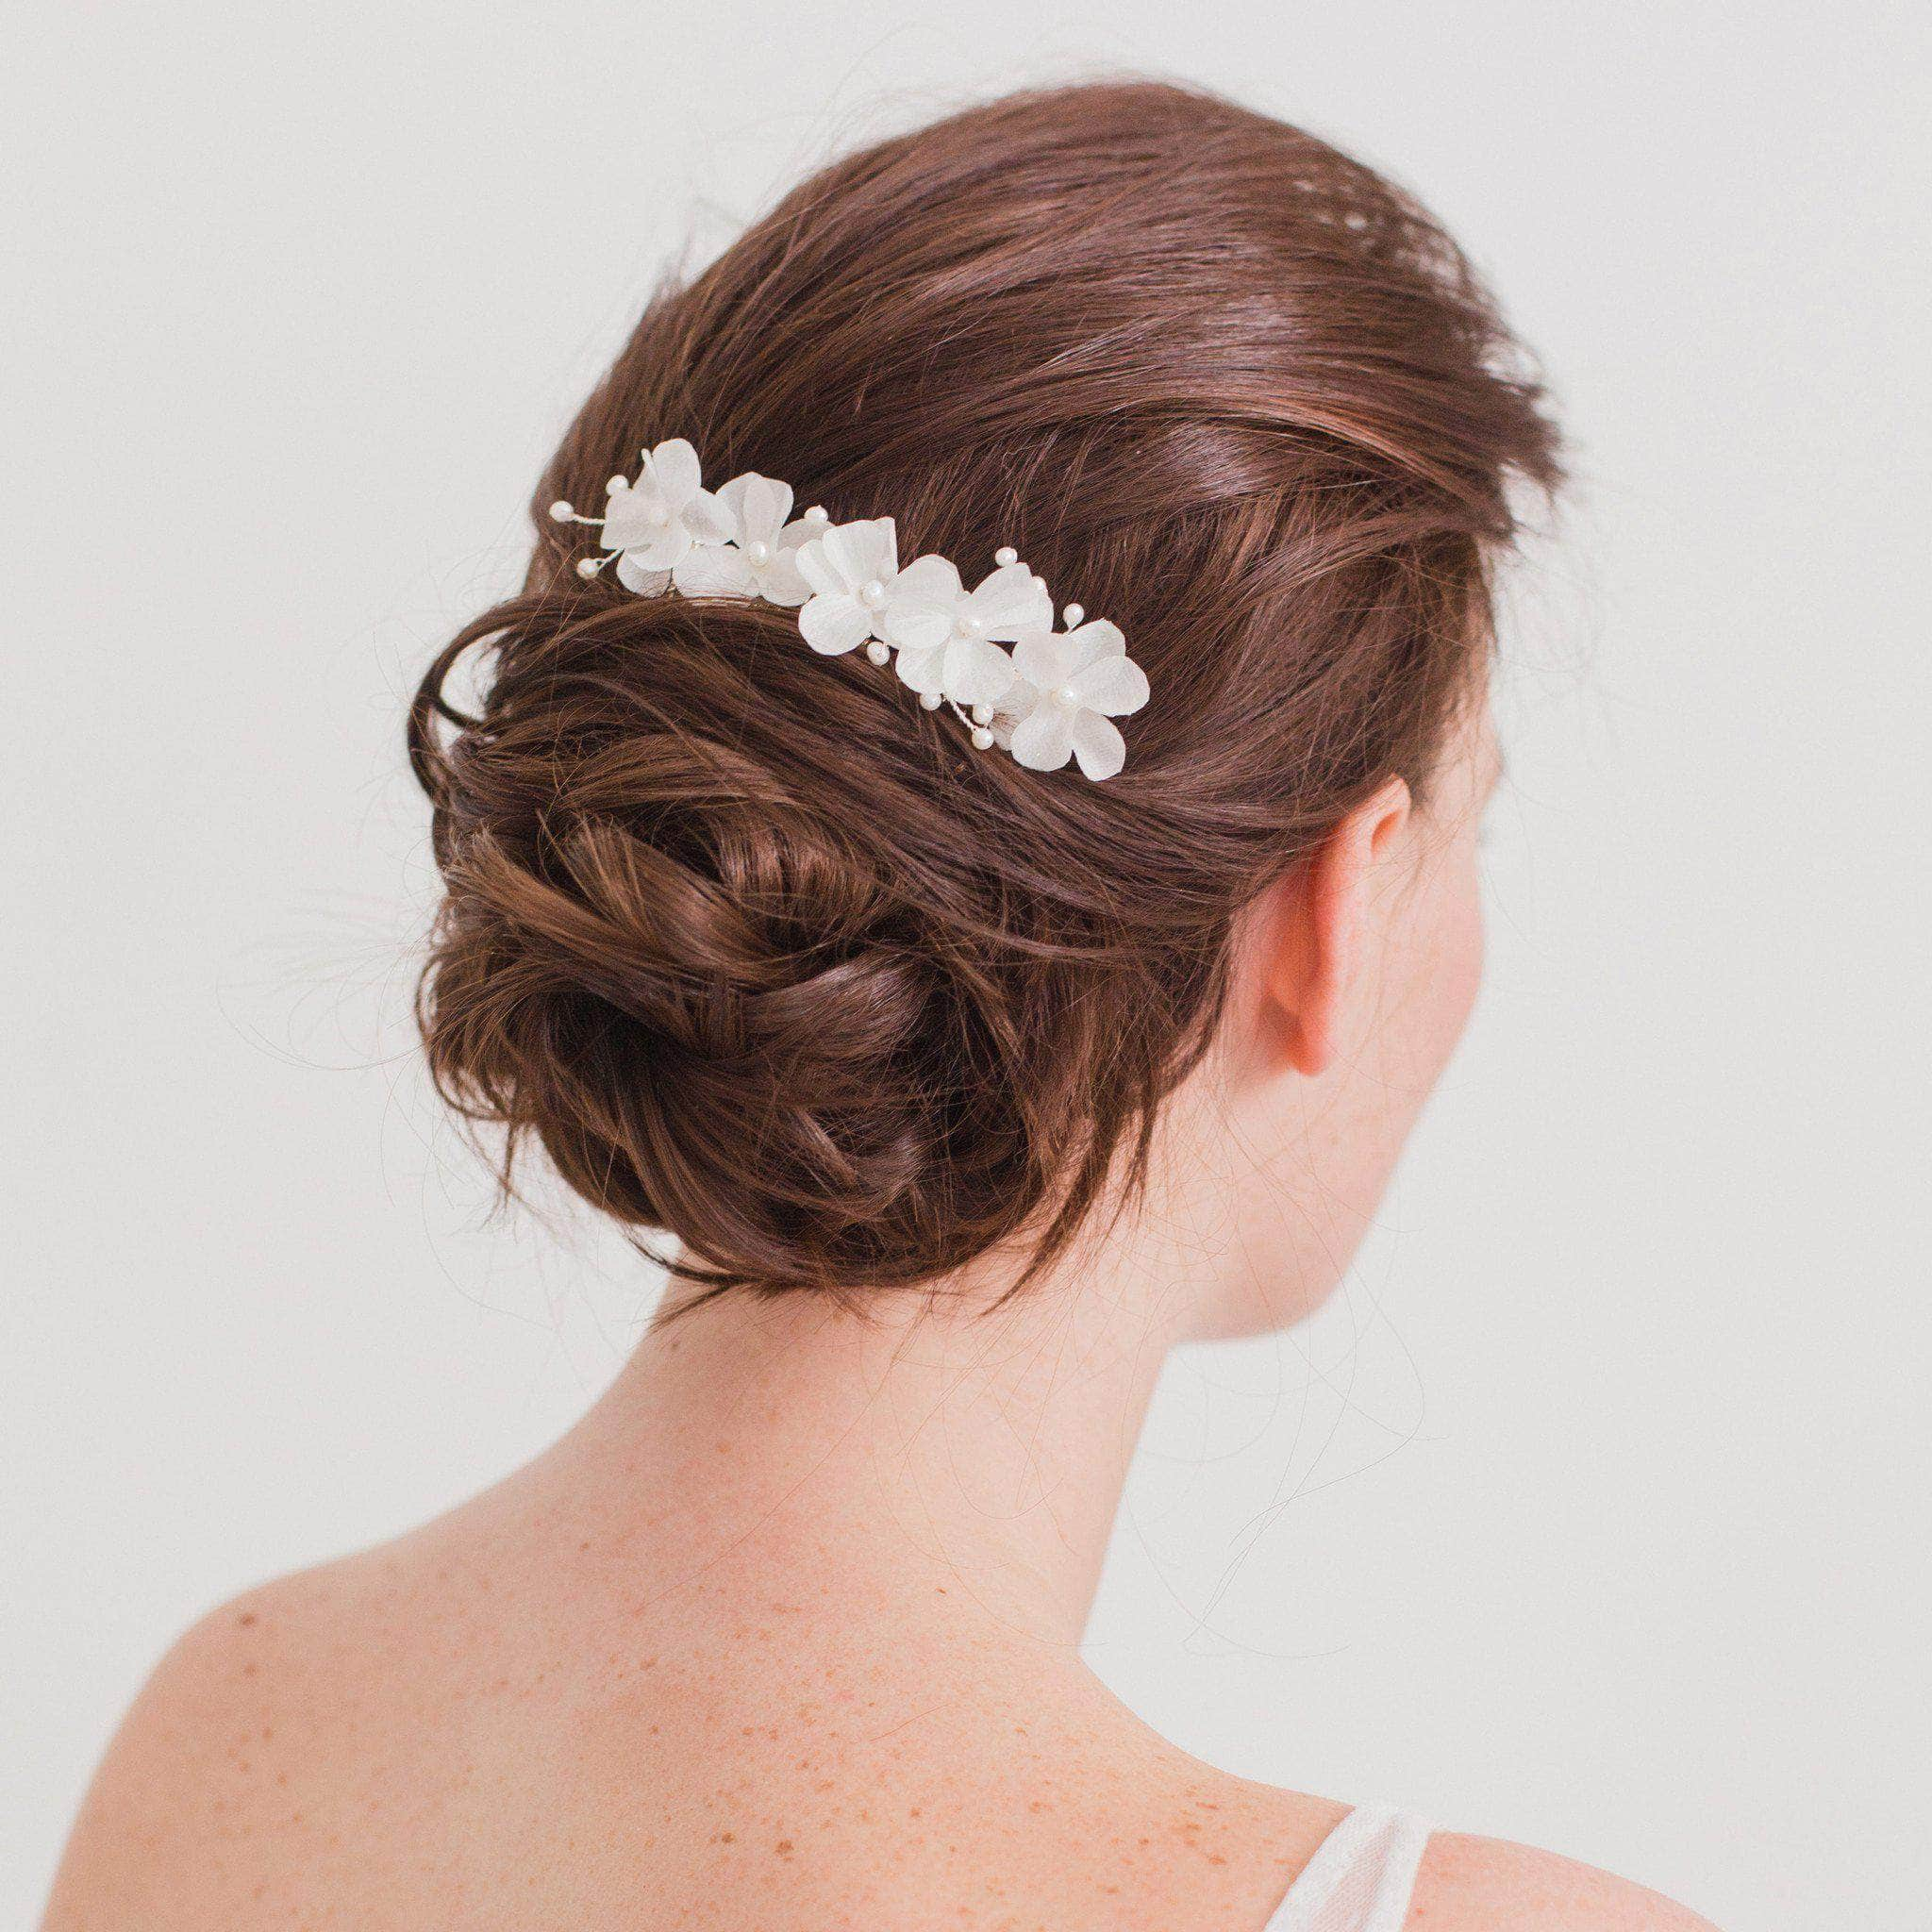 Floral Wedding Hair Comb By Britten: Silk Flower Comb For A Bride - 'Sulis'